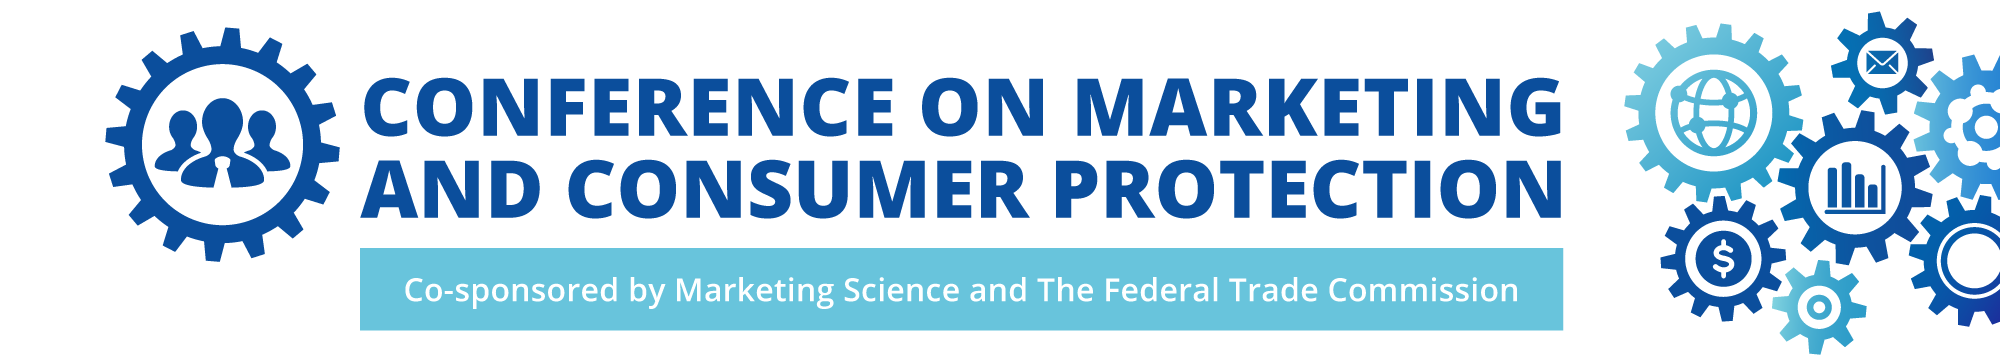 Conference on Marketing and Consumer Protection - Co-sponsored by Marketing Science and The Federal Trade Commission